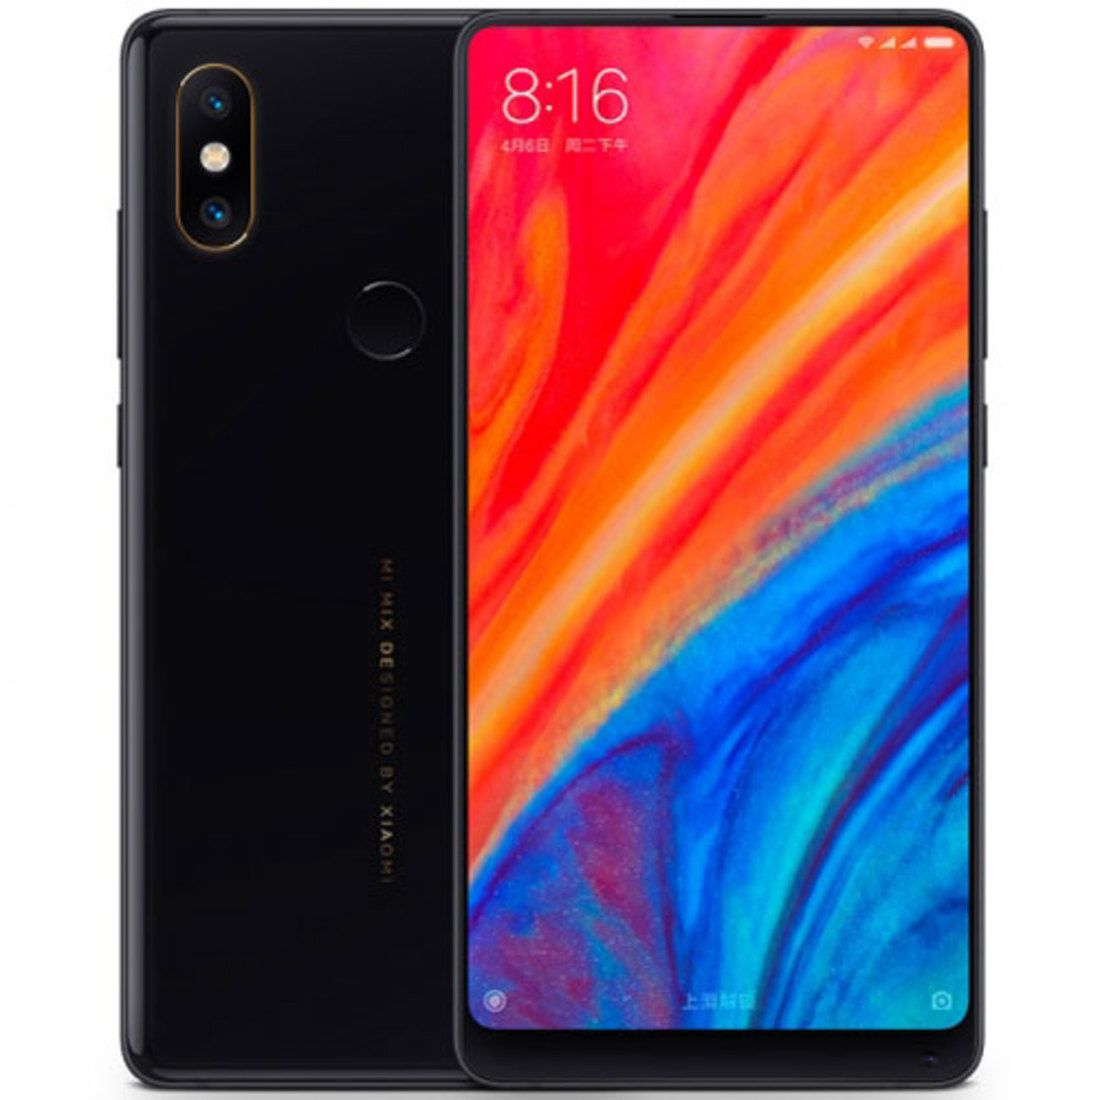 Smartphone Mi Mix 2s 6GB Ram Tela 5.99 64GB Camera Dupla 12+12MP - Preto